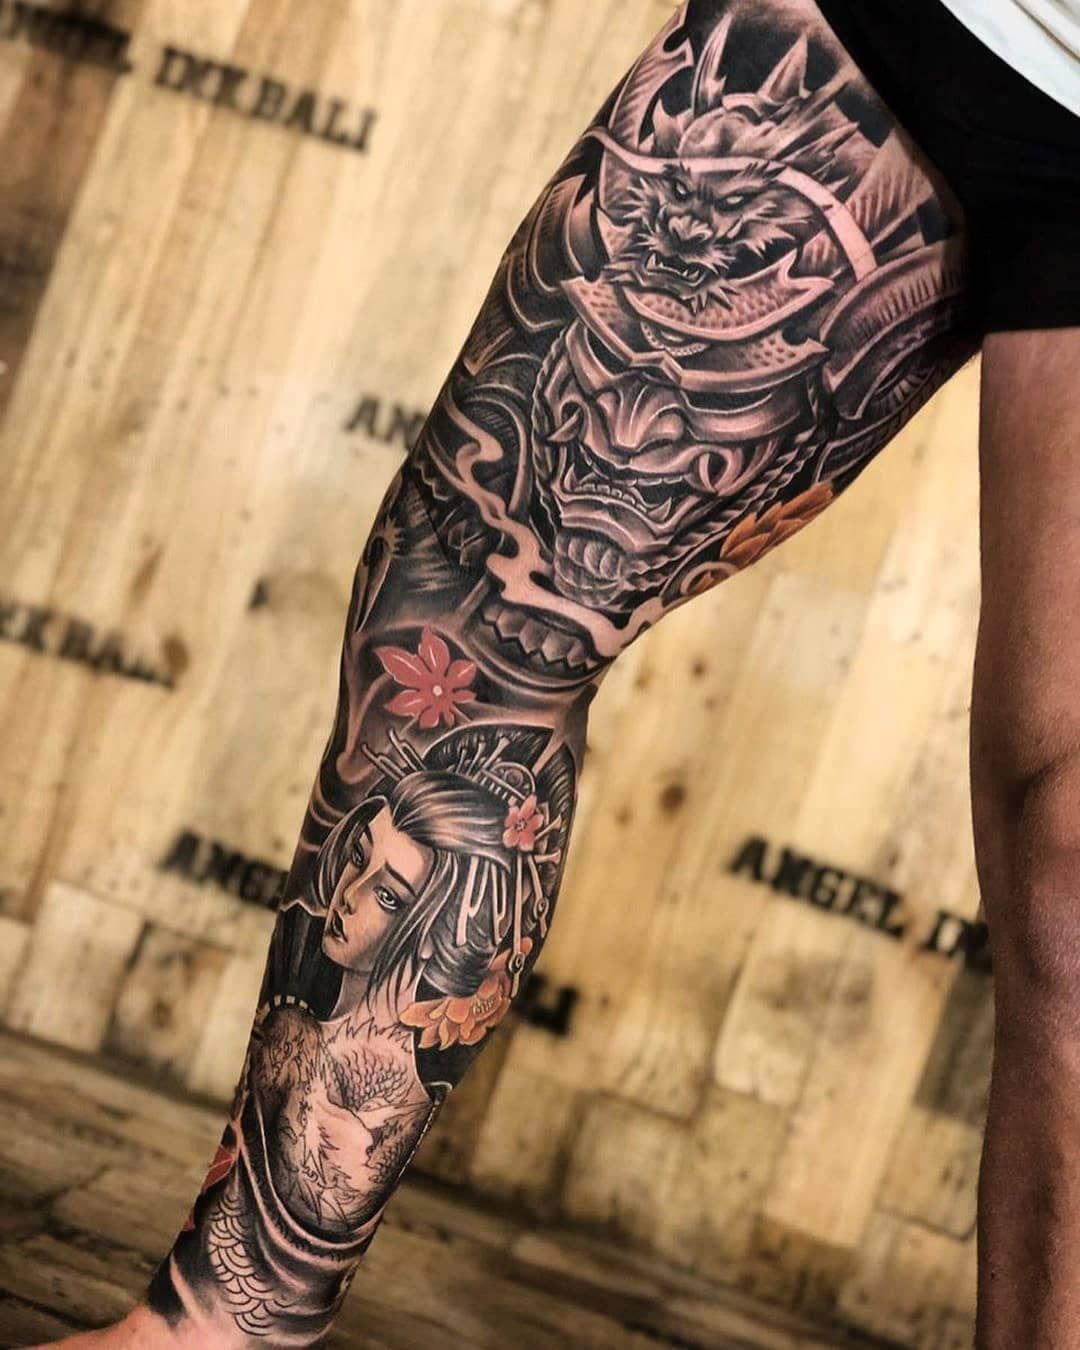 25 Unique Leg Tattoos For Men In 2020 Leg Tattoo Men Full Leg Tattoos Leg Sleeve Tattoo